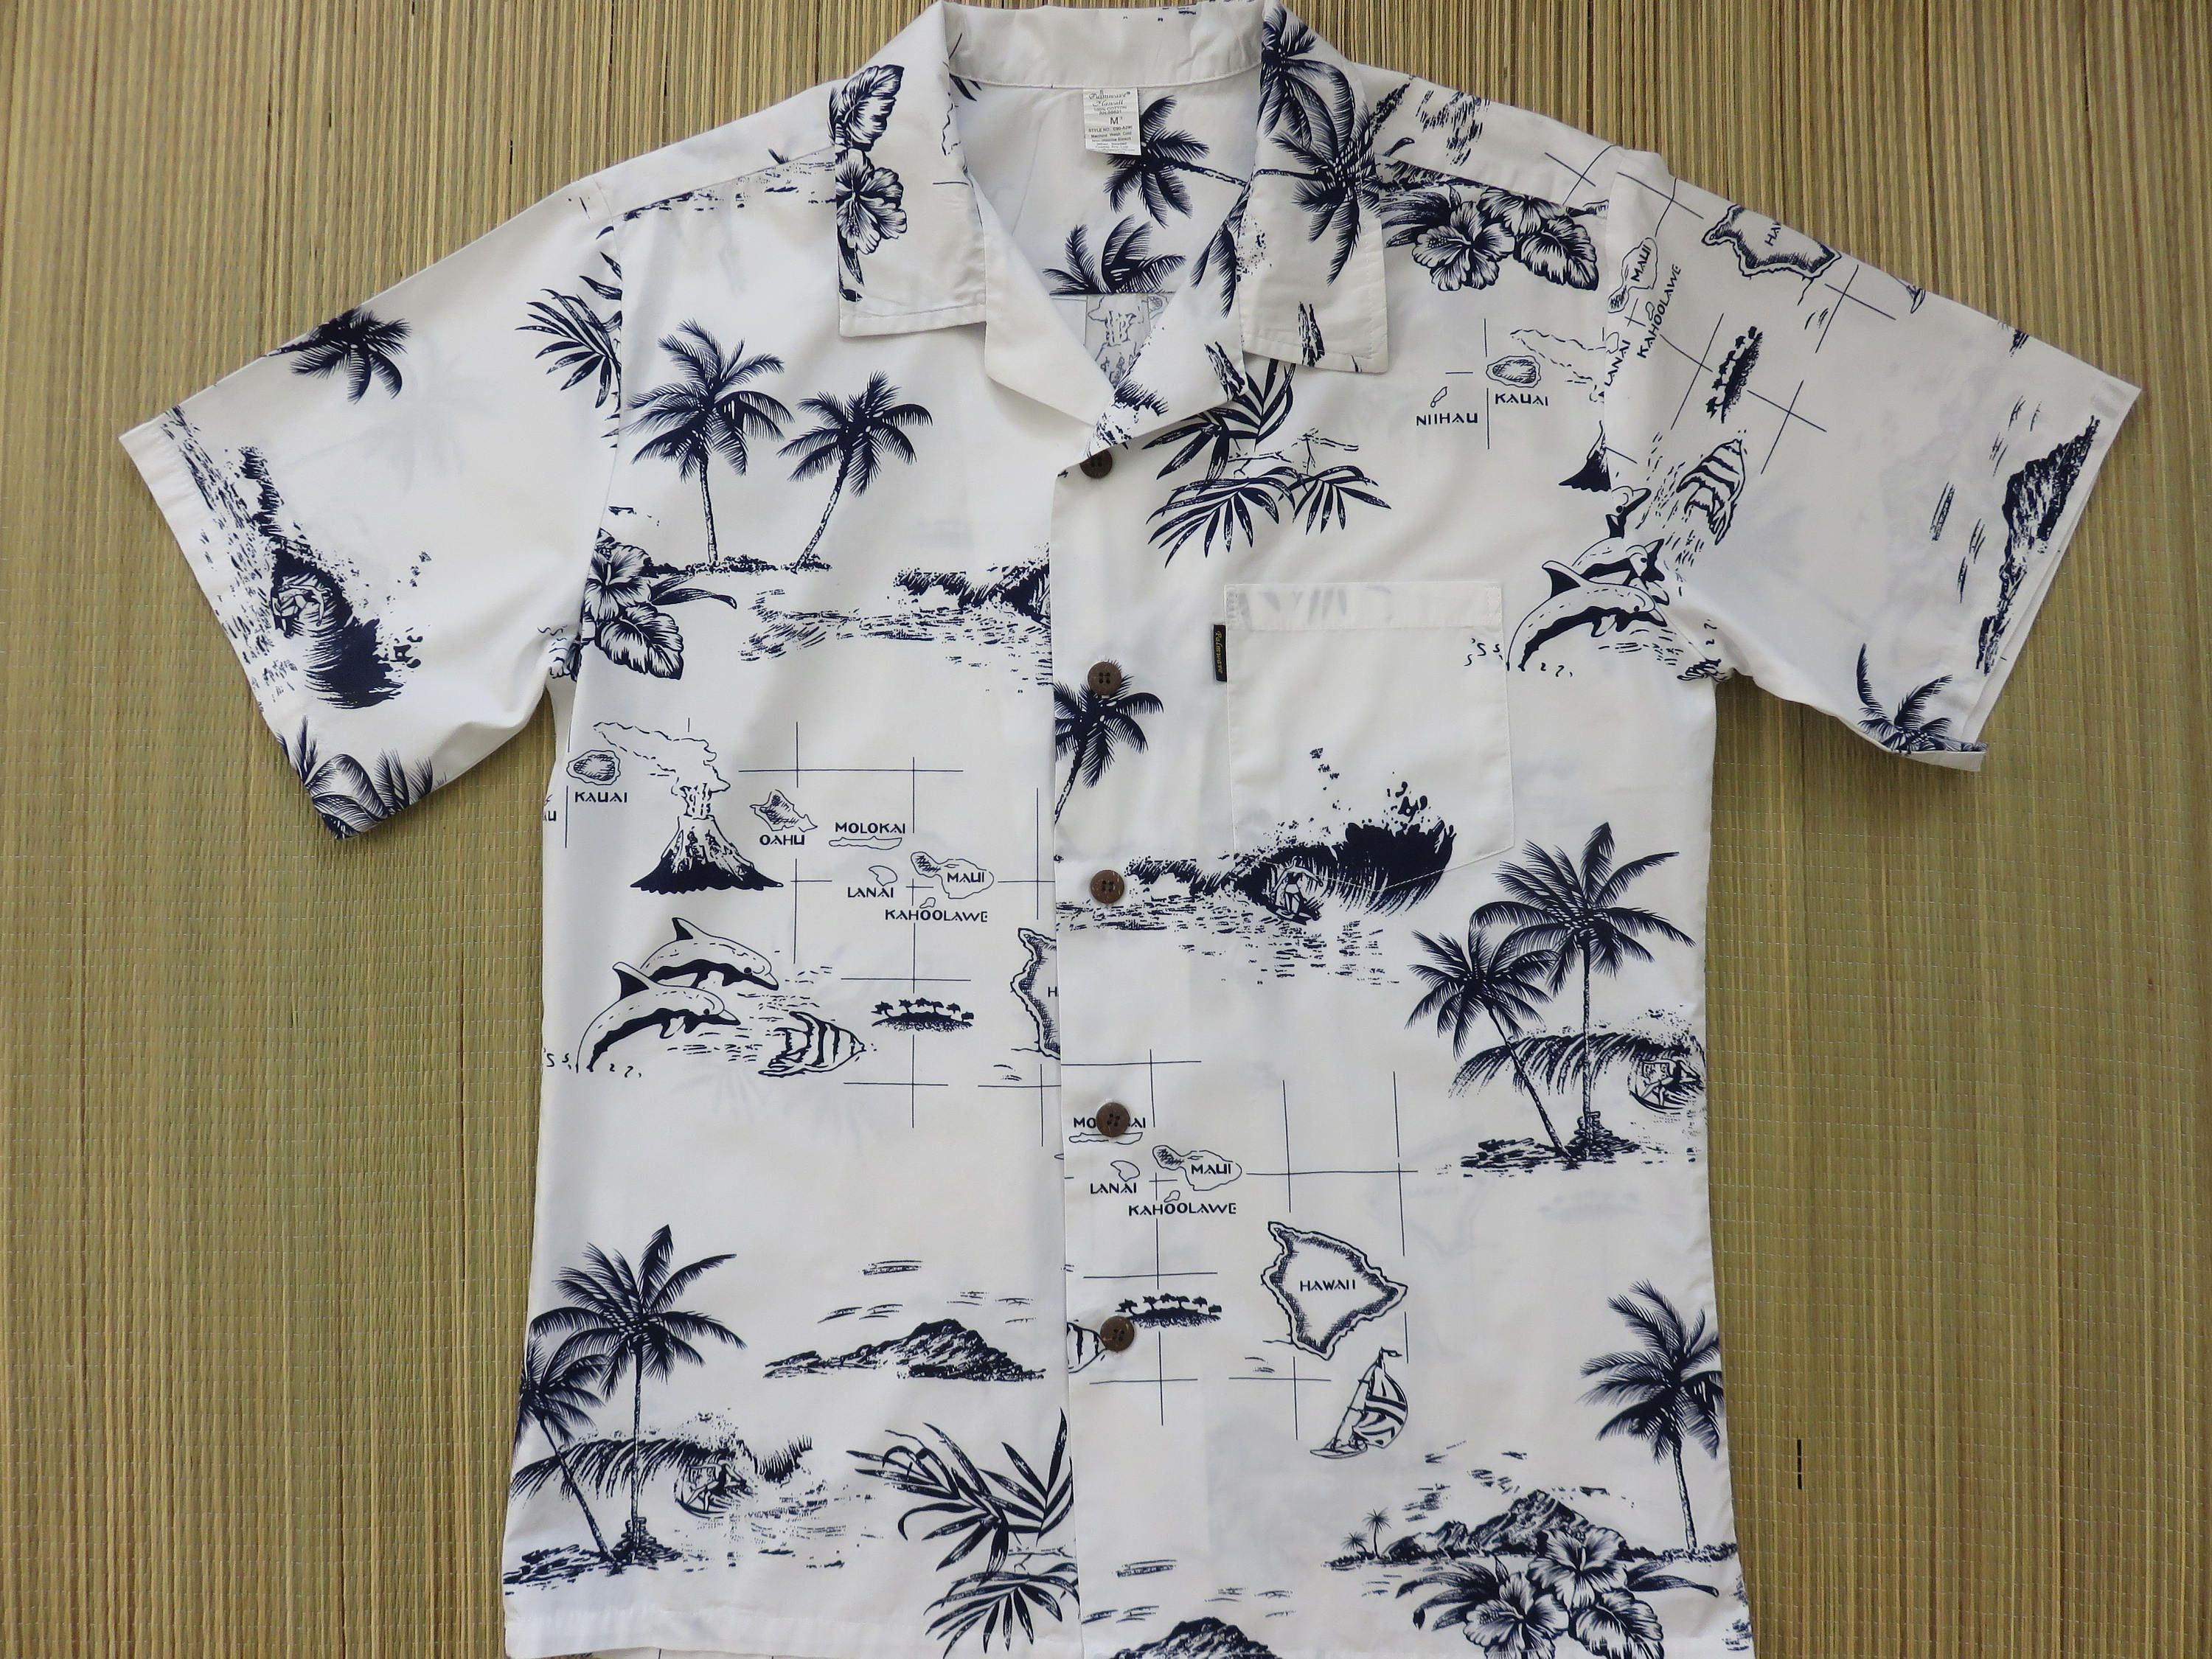 3f1838e5 Hawaiian Shirt Map Shirt PALMWAVE HAWAII Islands Surfer Aloha Shirt Volcano  Beach Vacation Vintage Mens Camp - M - Oahu Lew's Shirt Shack by ...